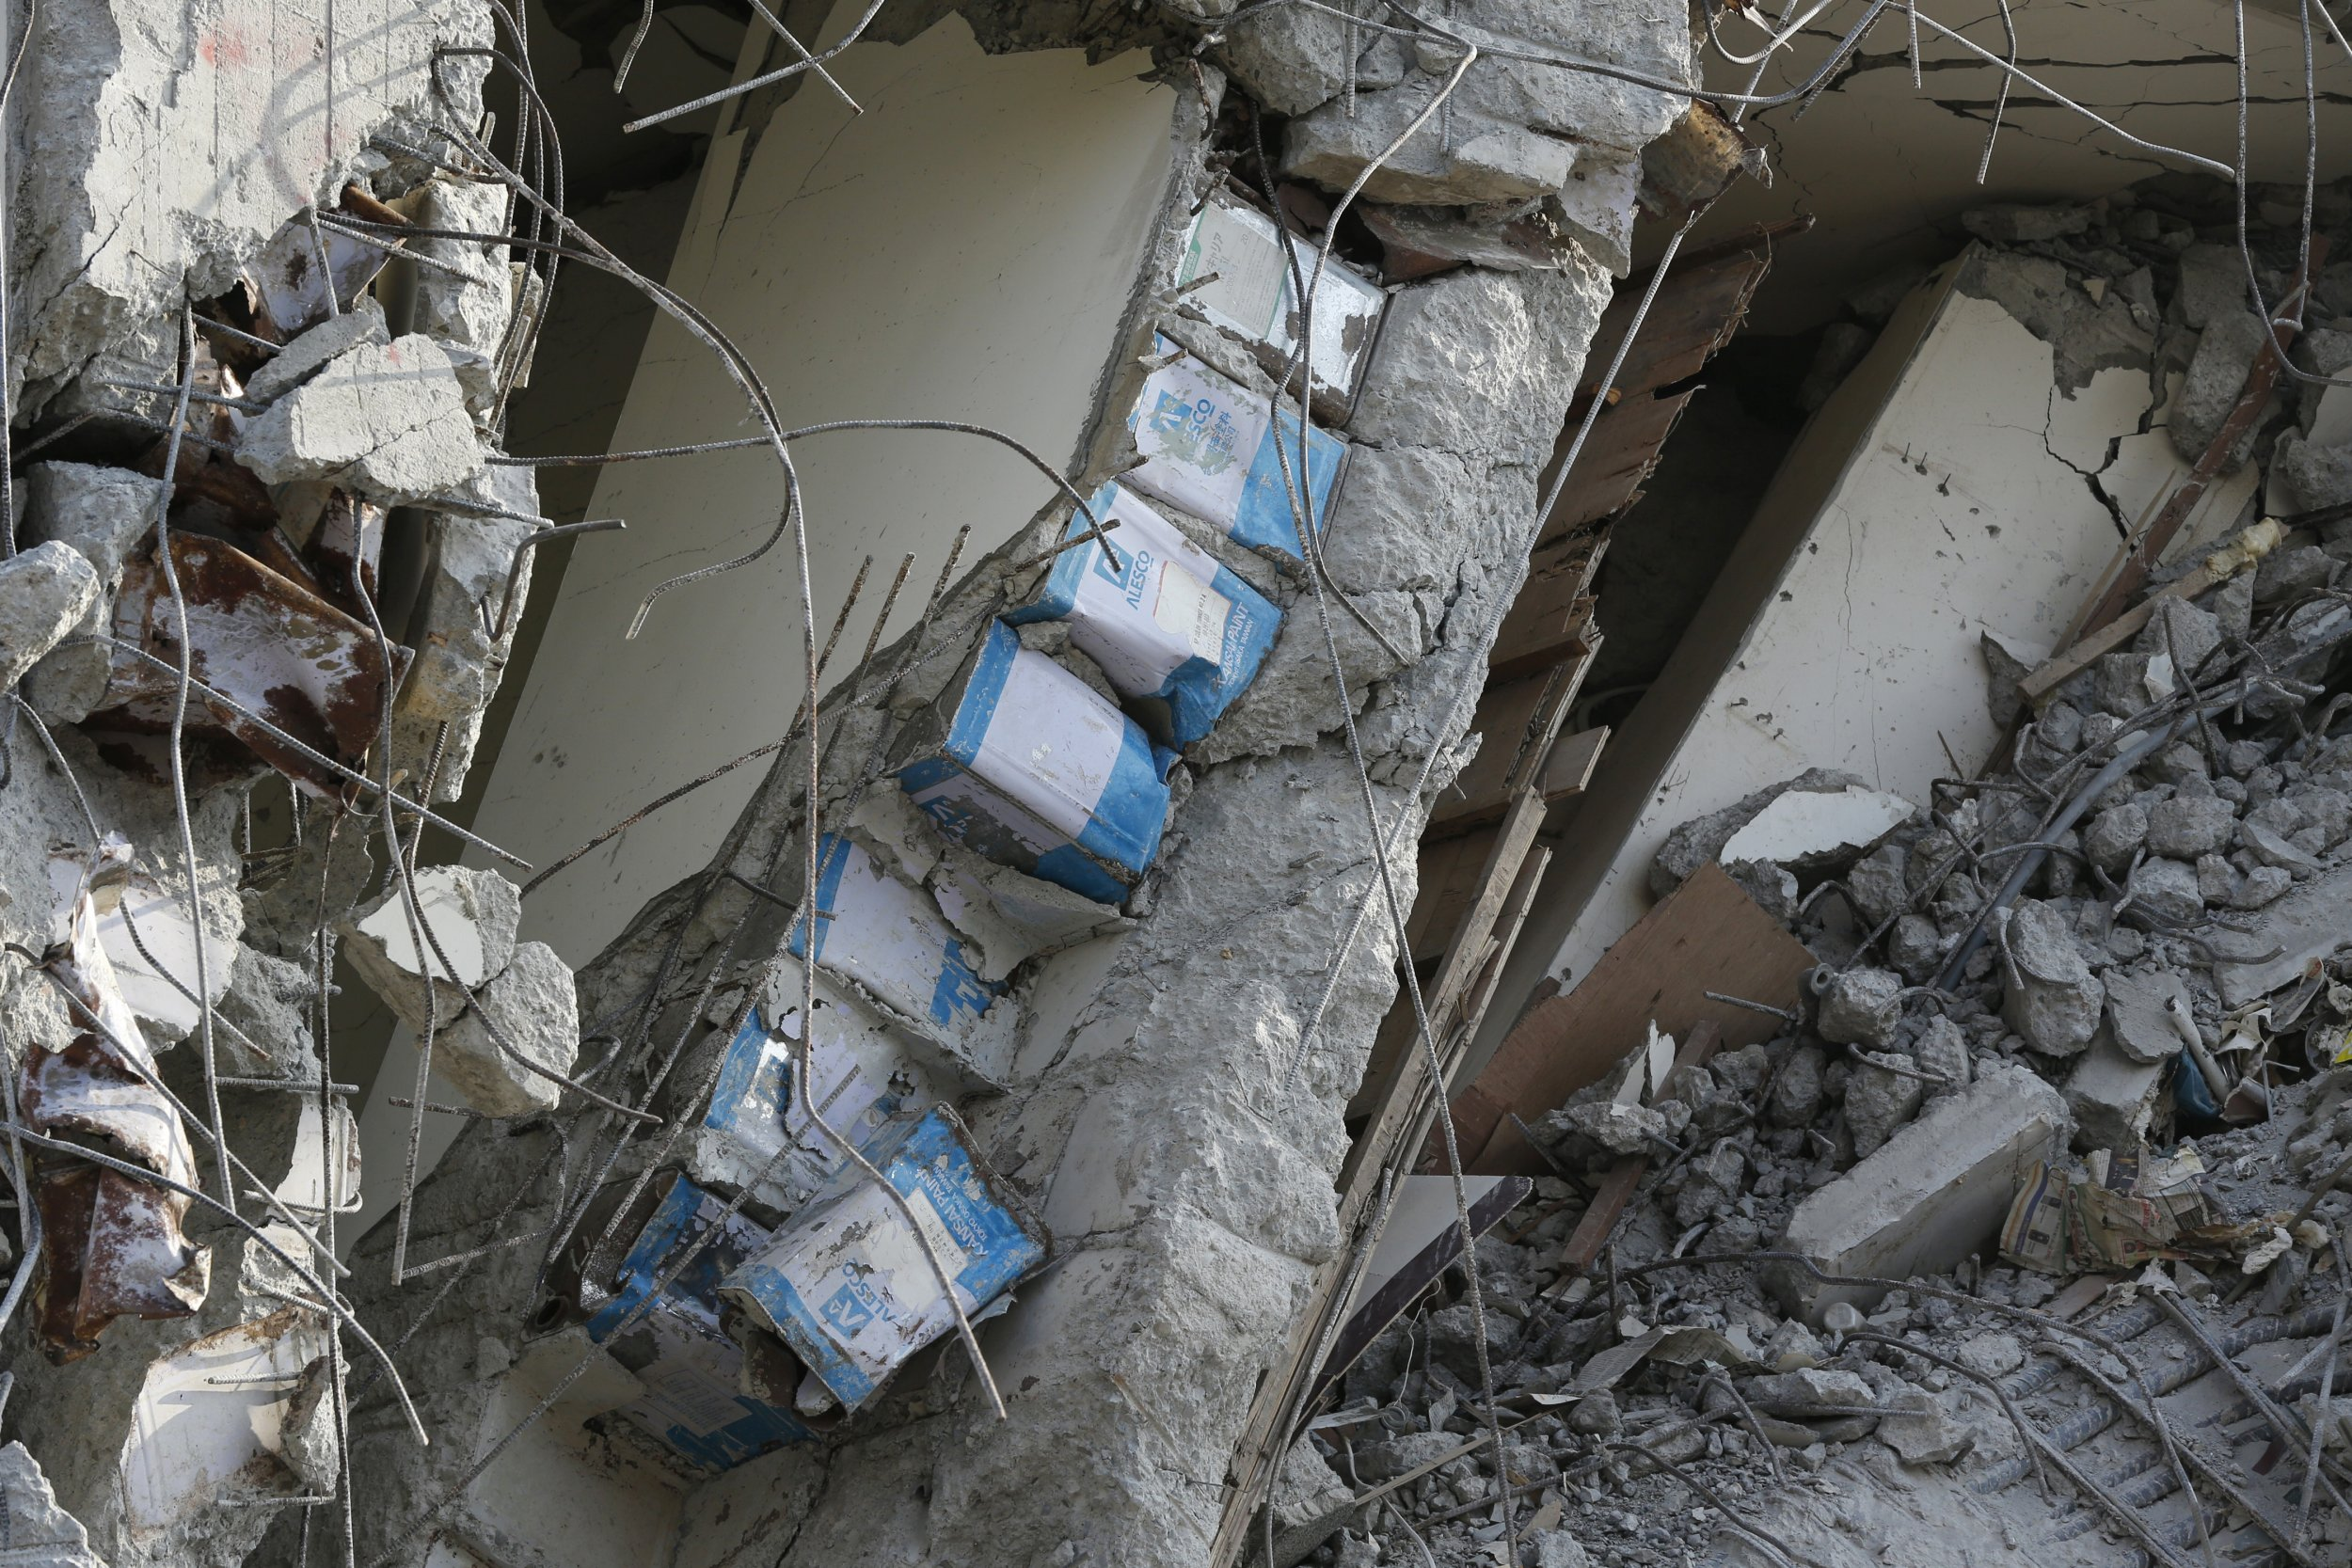 In this Sunday, Feb. 7, 2016, photo, tin cans are exposed in the cement structure of the collapsed building complex in Tainan, Taiwan. More than 100 people are believed to be still buried in the collapsed building from a disaster that struck during the most important family holiday in the Chinese calendar ó the Lunar New Year holiday. (AP Photo/Wally Santana